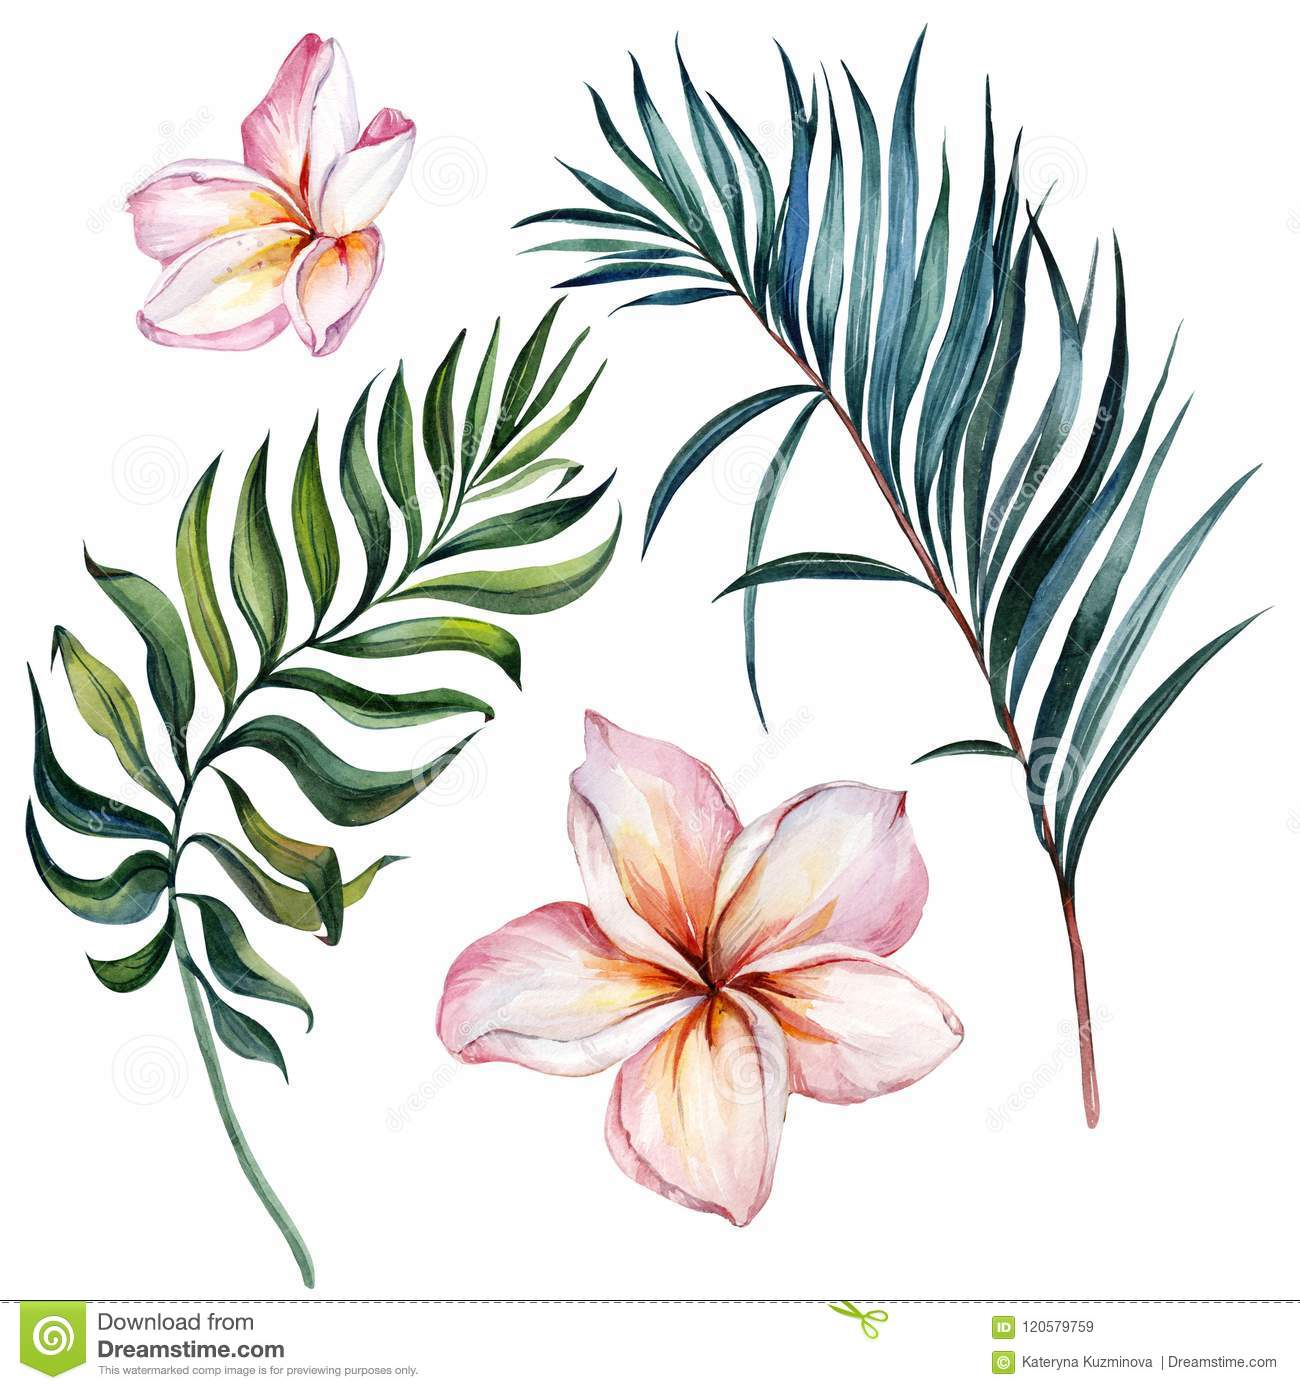 Tropical exotic floral set. Beautiful pink plumeria flowers and green palm leaves isolated on white background.